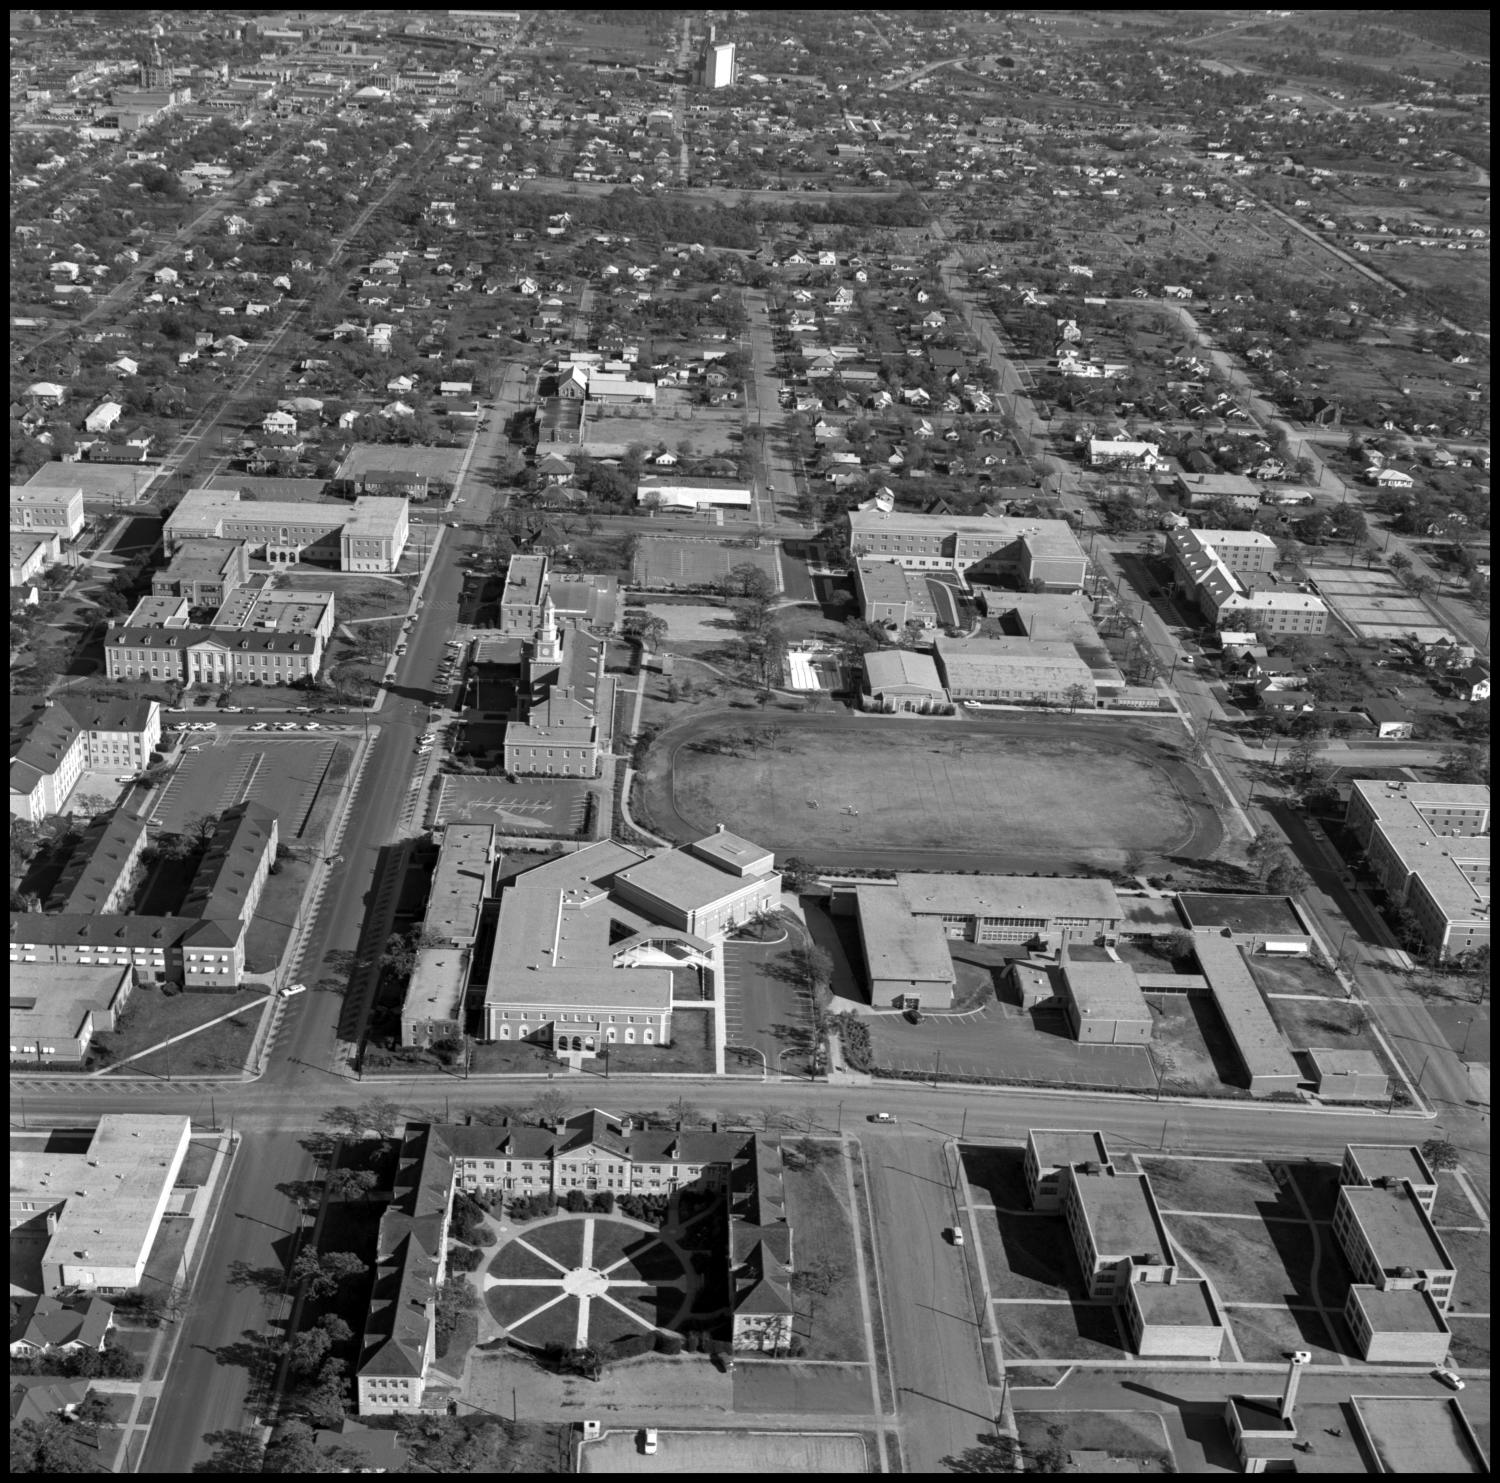 [Aerial of NTSU from the West], Aerial photograph of the NTSU campus from the west. The buildings visible in the photo are the Quadrangle Dormitories, Chilton Hall, the University Hospital, Bruce Hall, the Music Hall/Orchestra Hall, the Music Building, the Mens Building, the Laboratory School, Crumley Hall, Eagle Park, Kendall Hall, the Education-Home Economics Building, the Womens Gymnasium, the Journalism Building, the Laboratory School Gymnasium, the Memorial Union, the Administration Building, the Library Building, the Language-Government Building, and the Business Administration Building. Avenue C runs across the image left to right and intersects with Chestnut and Highland Streets.,